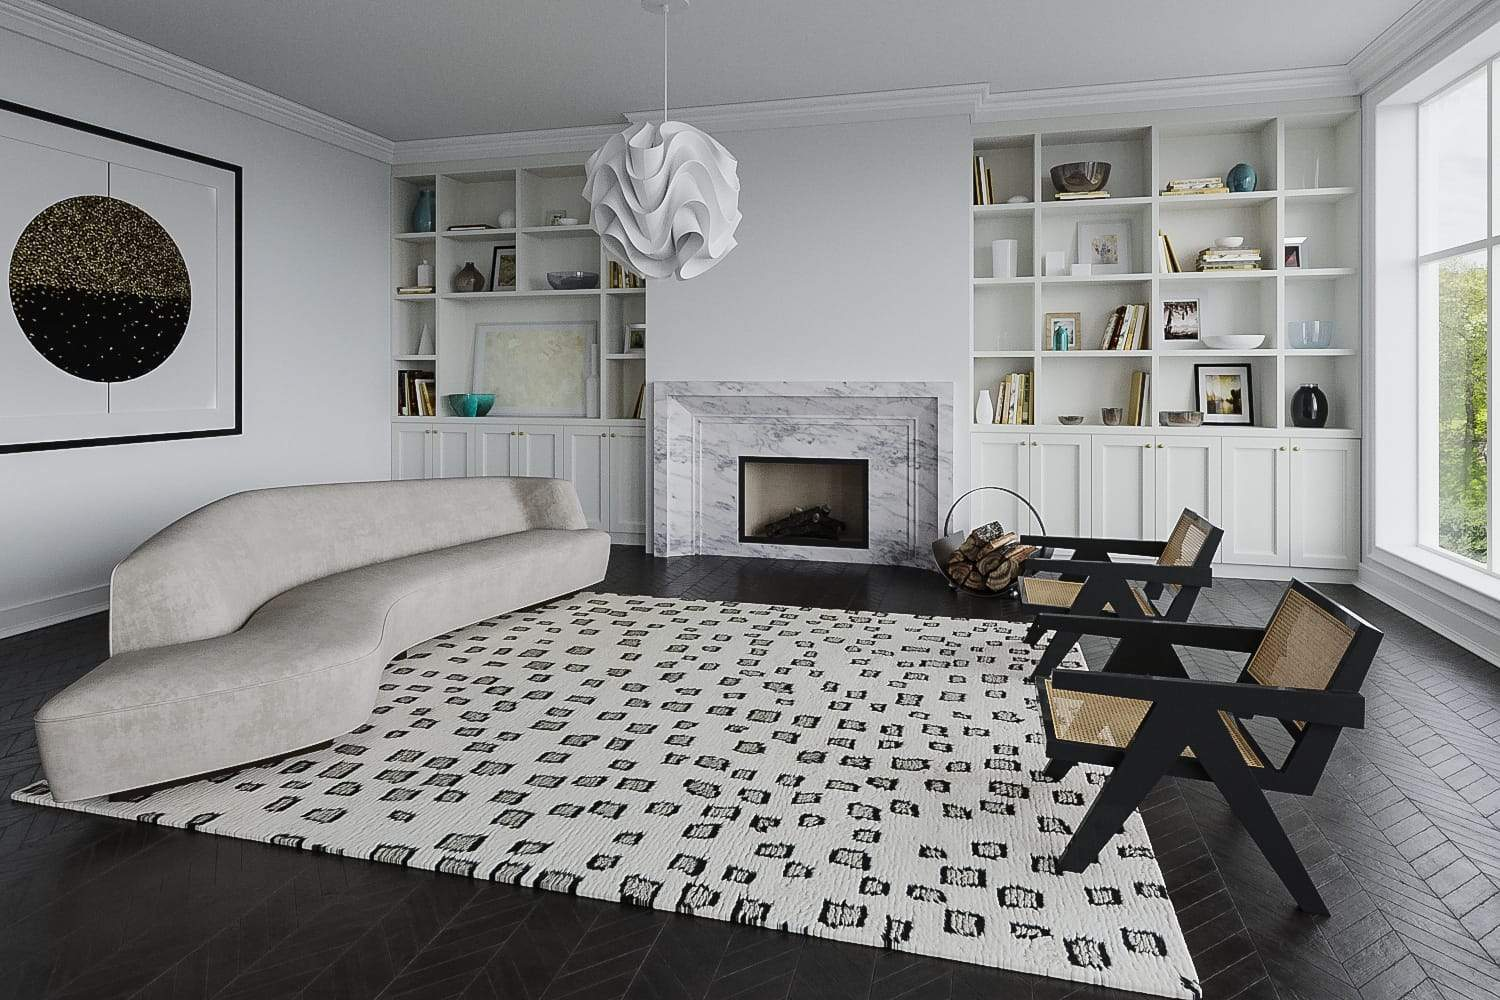 Installation of Higashi White Black, a hand knotted rug designed by Tufenkian Artisan Carpets. room-image